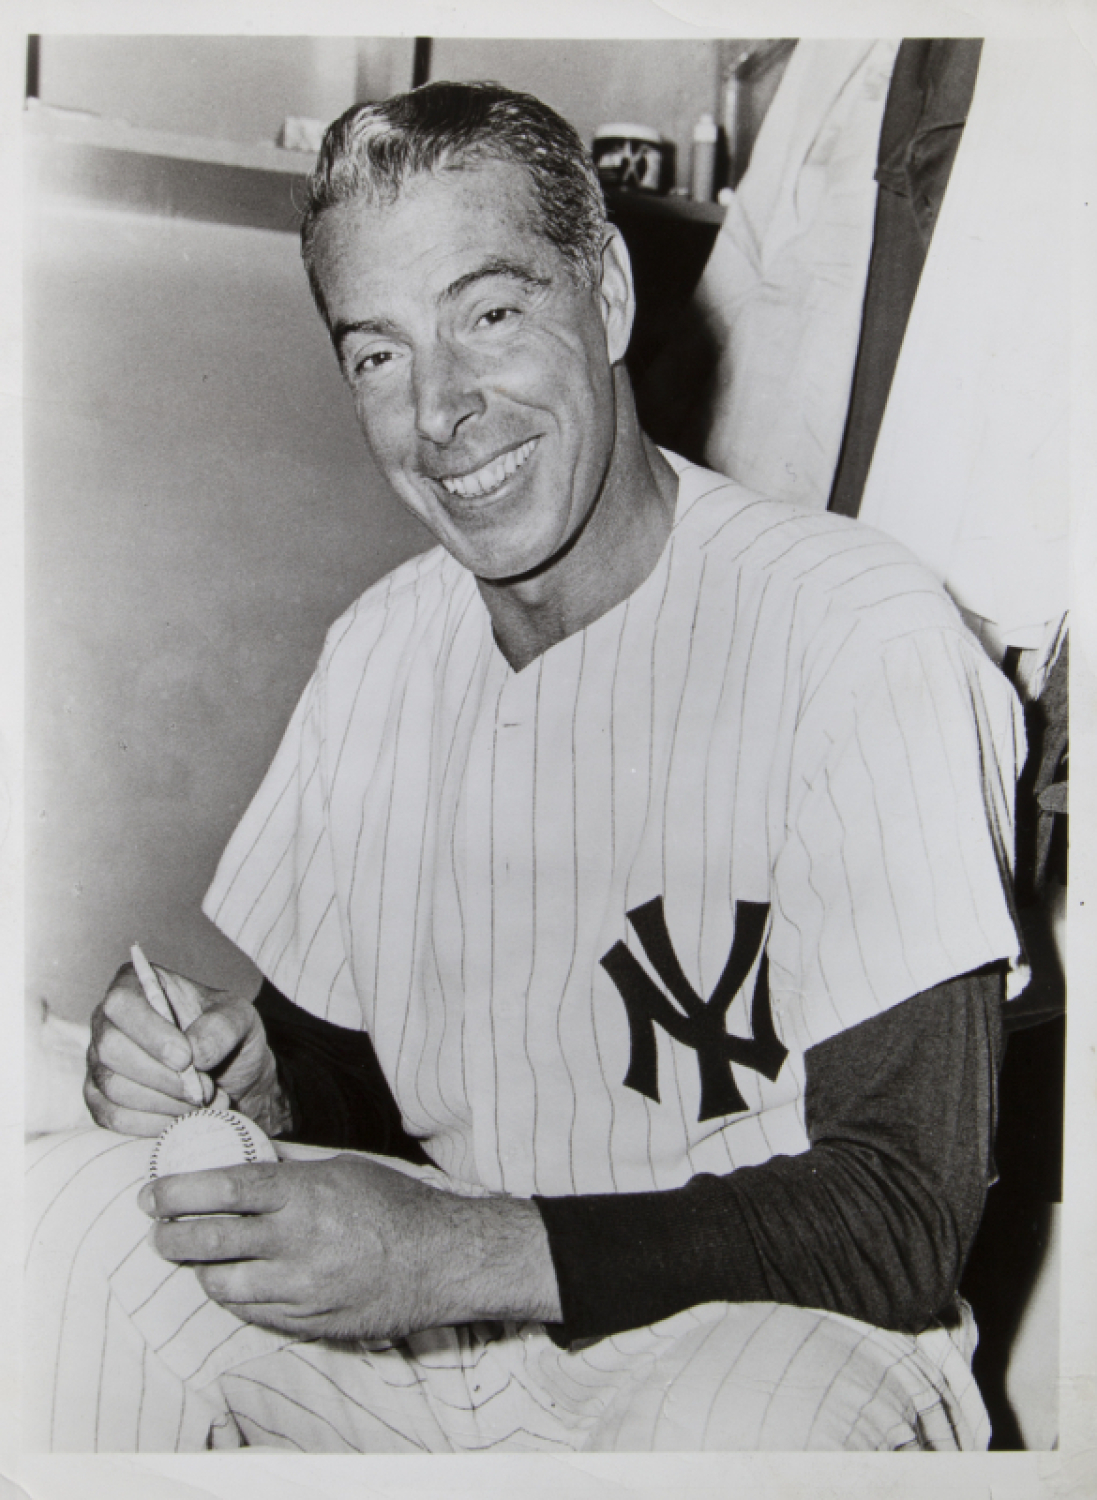 separation shoes f78dd 8ecaa MARILYN MONROE OWNED PHOTOGRAPH OF JOE DiMAGGIO IN NEW YORK ...